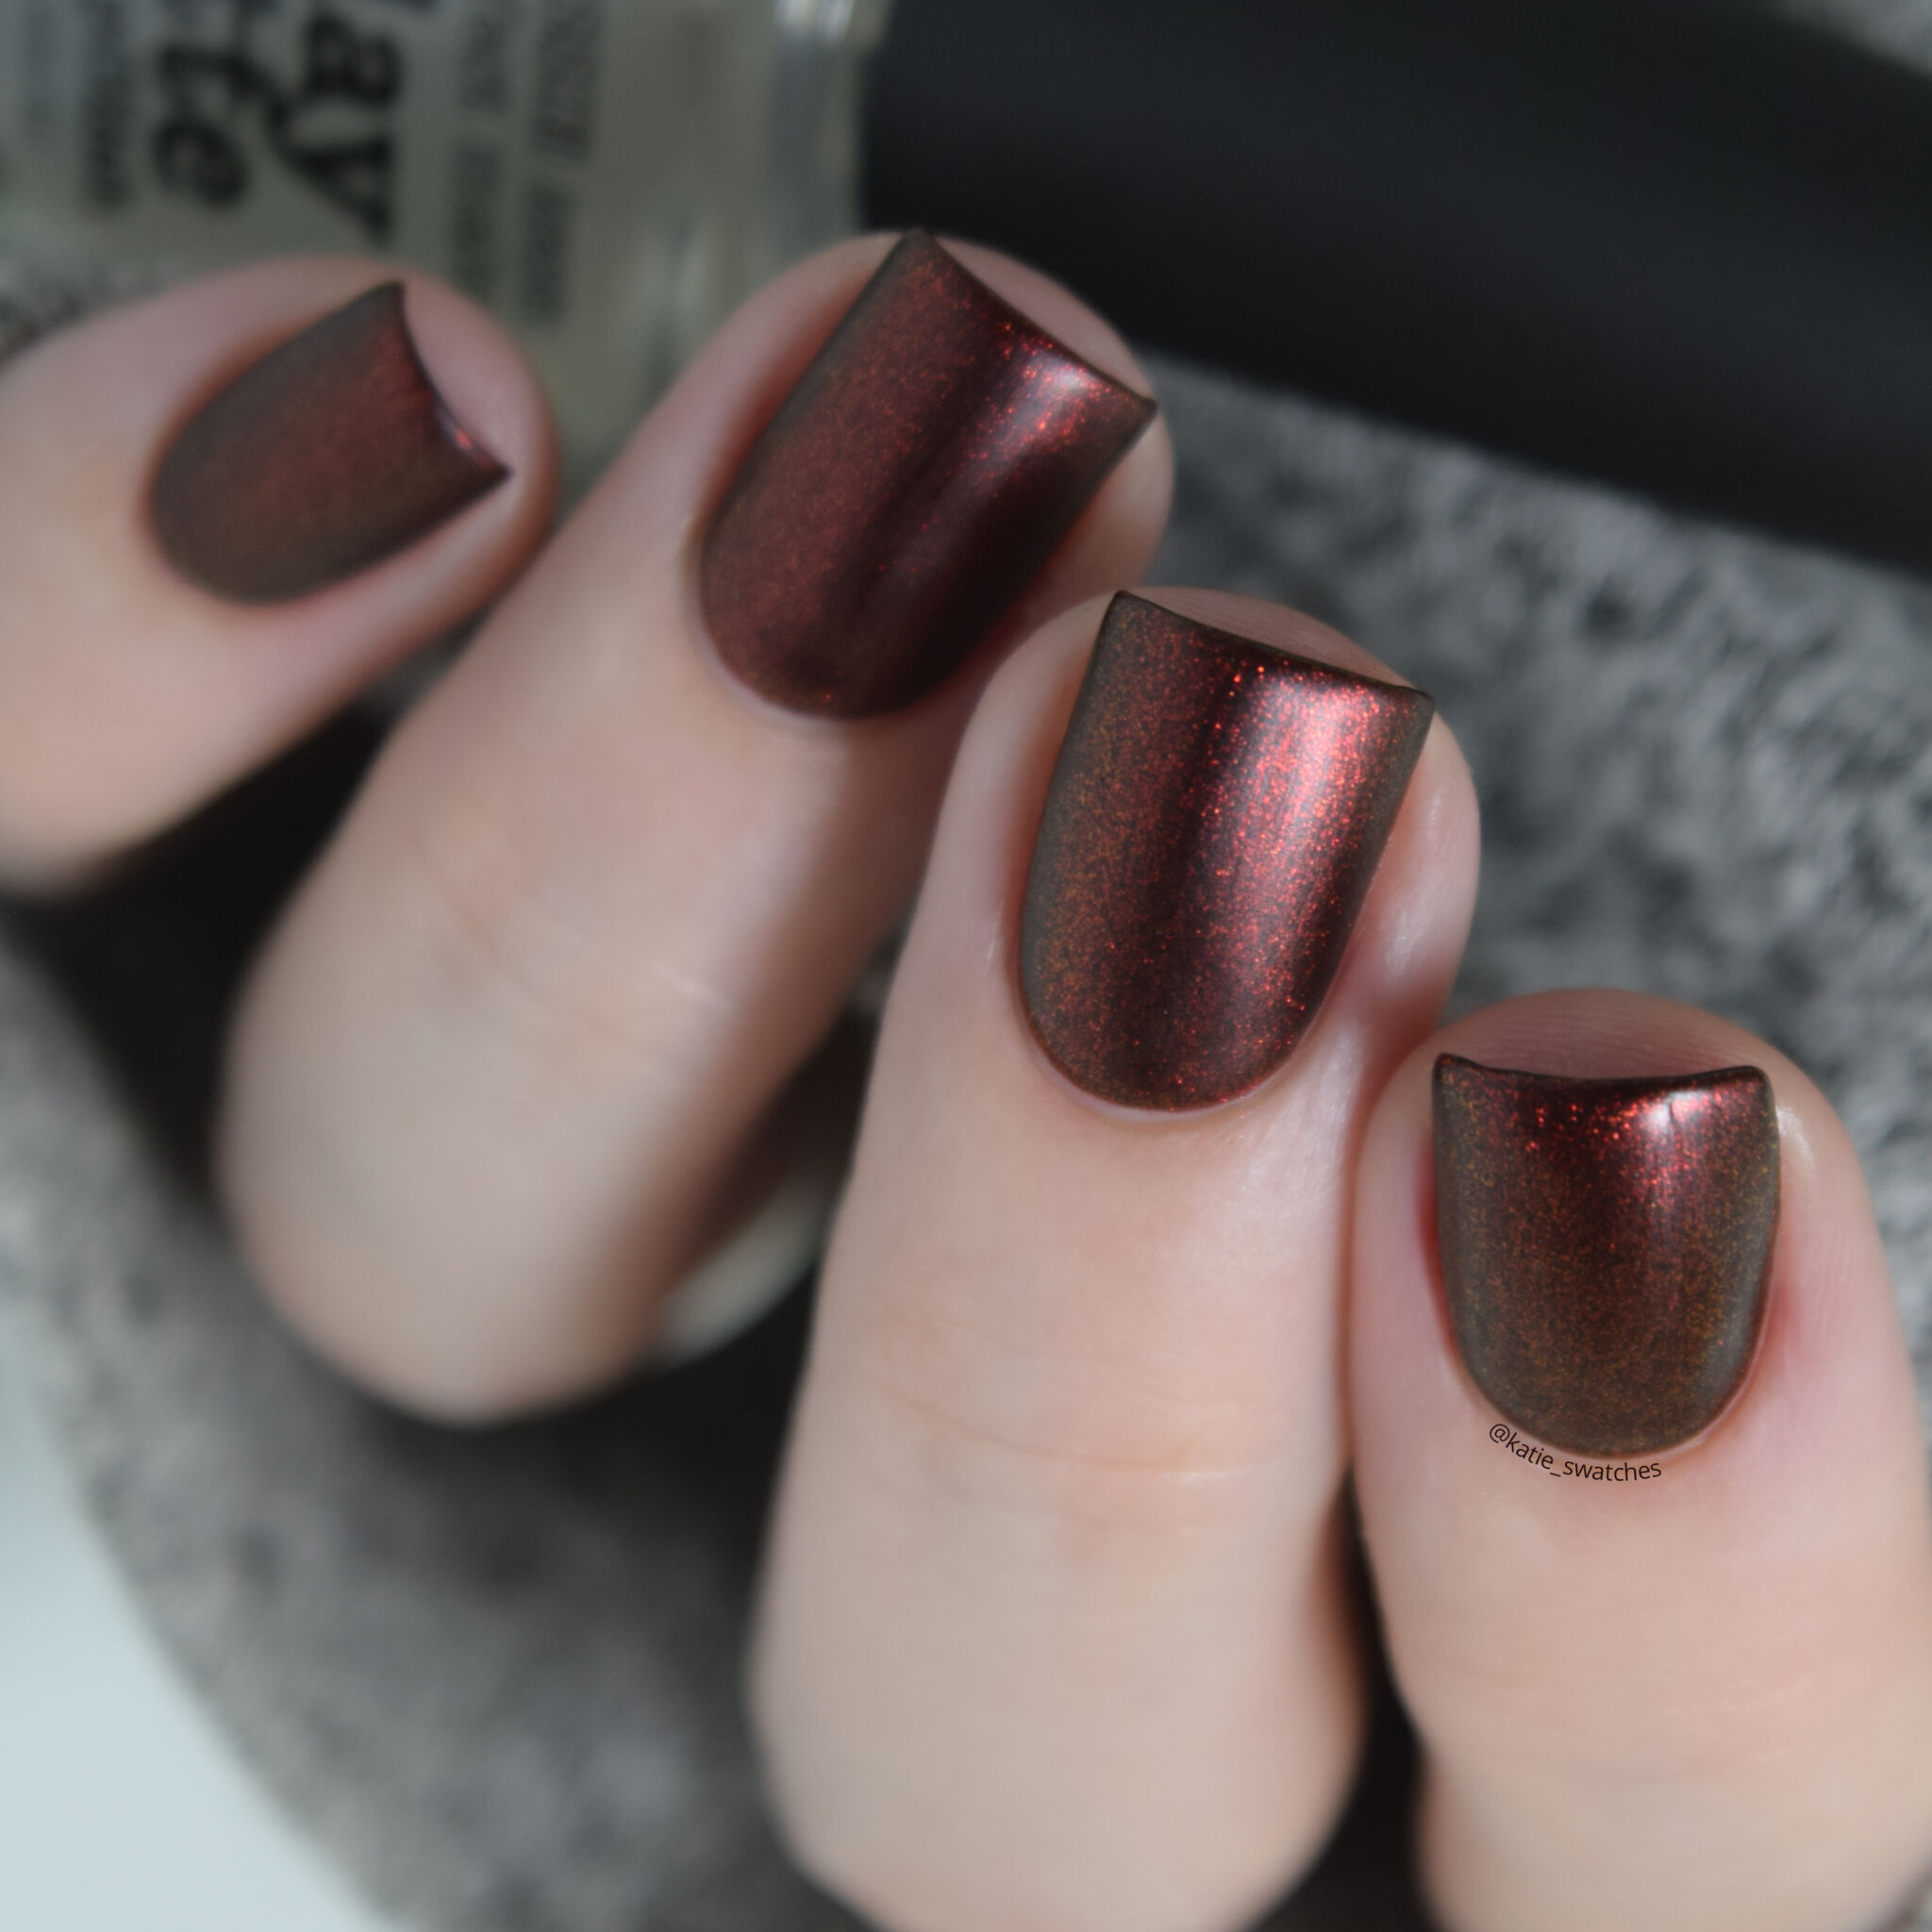 Tonic Polish - Blood On My Hands red to gold-green duochrome nail polish swatch with matte top coat from the Tonic Polish Fall 2019 Collection